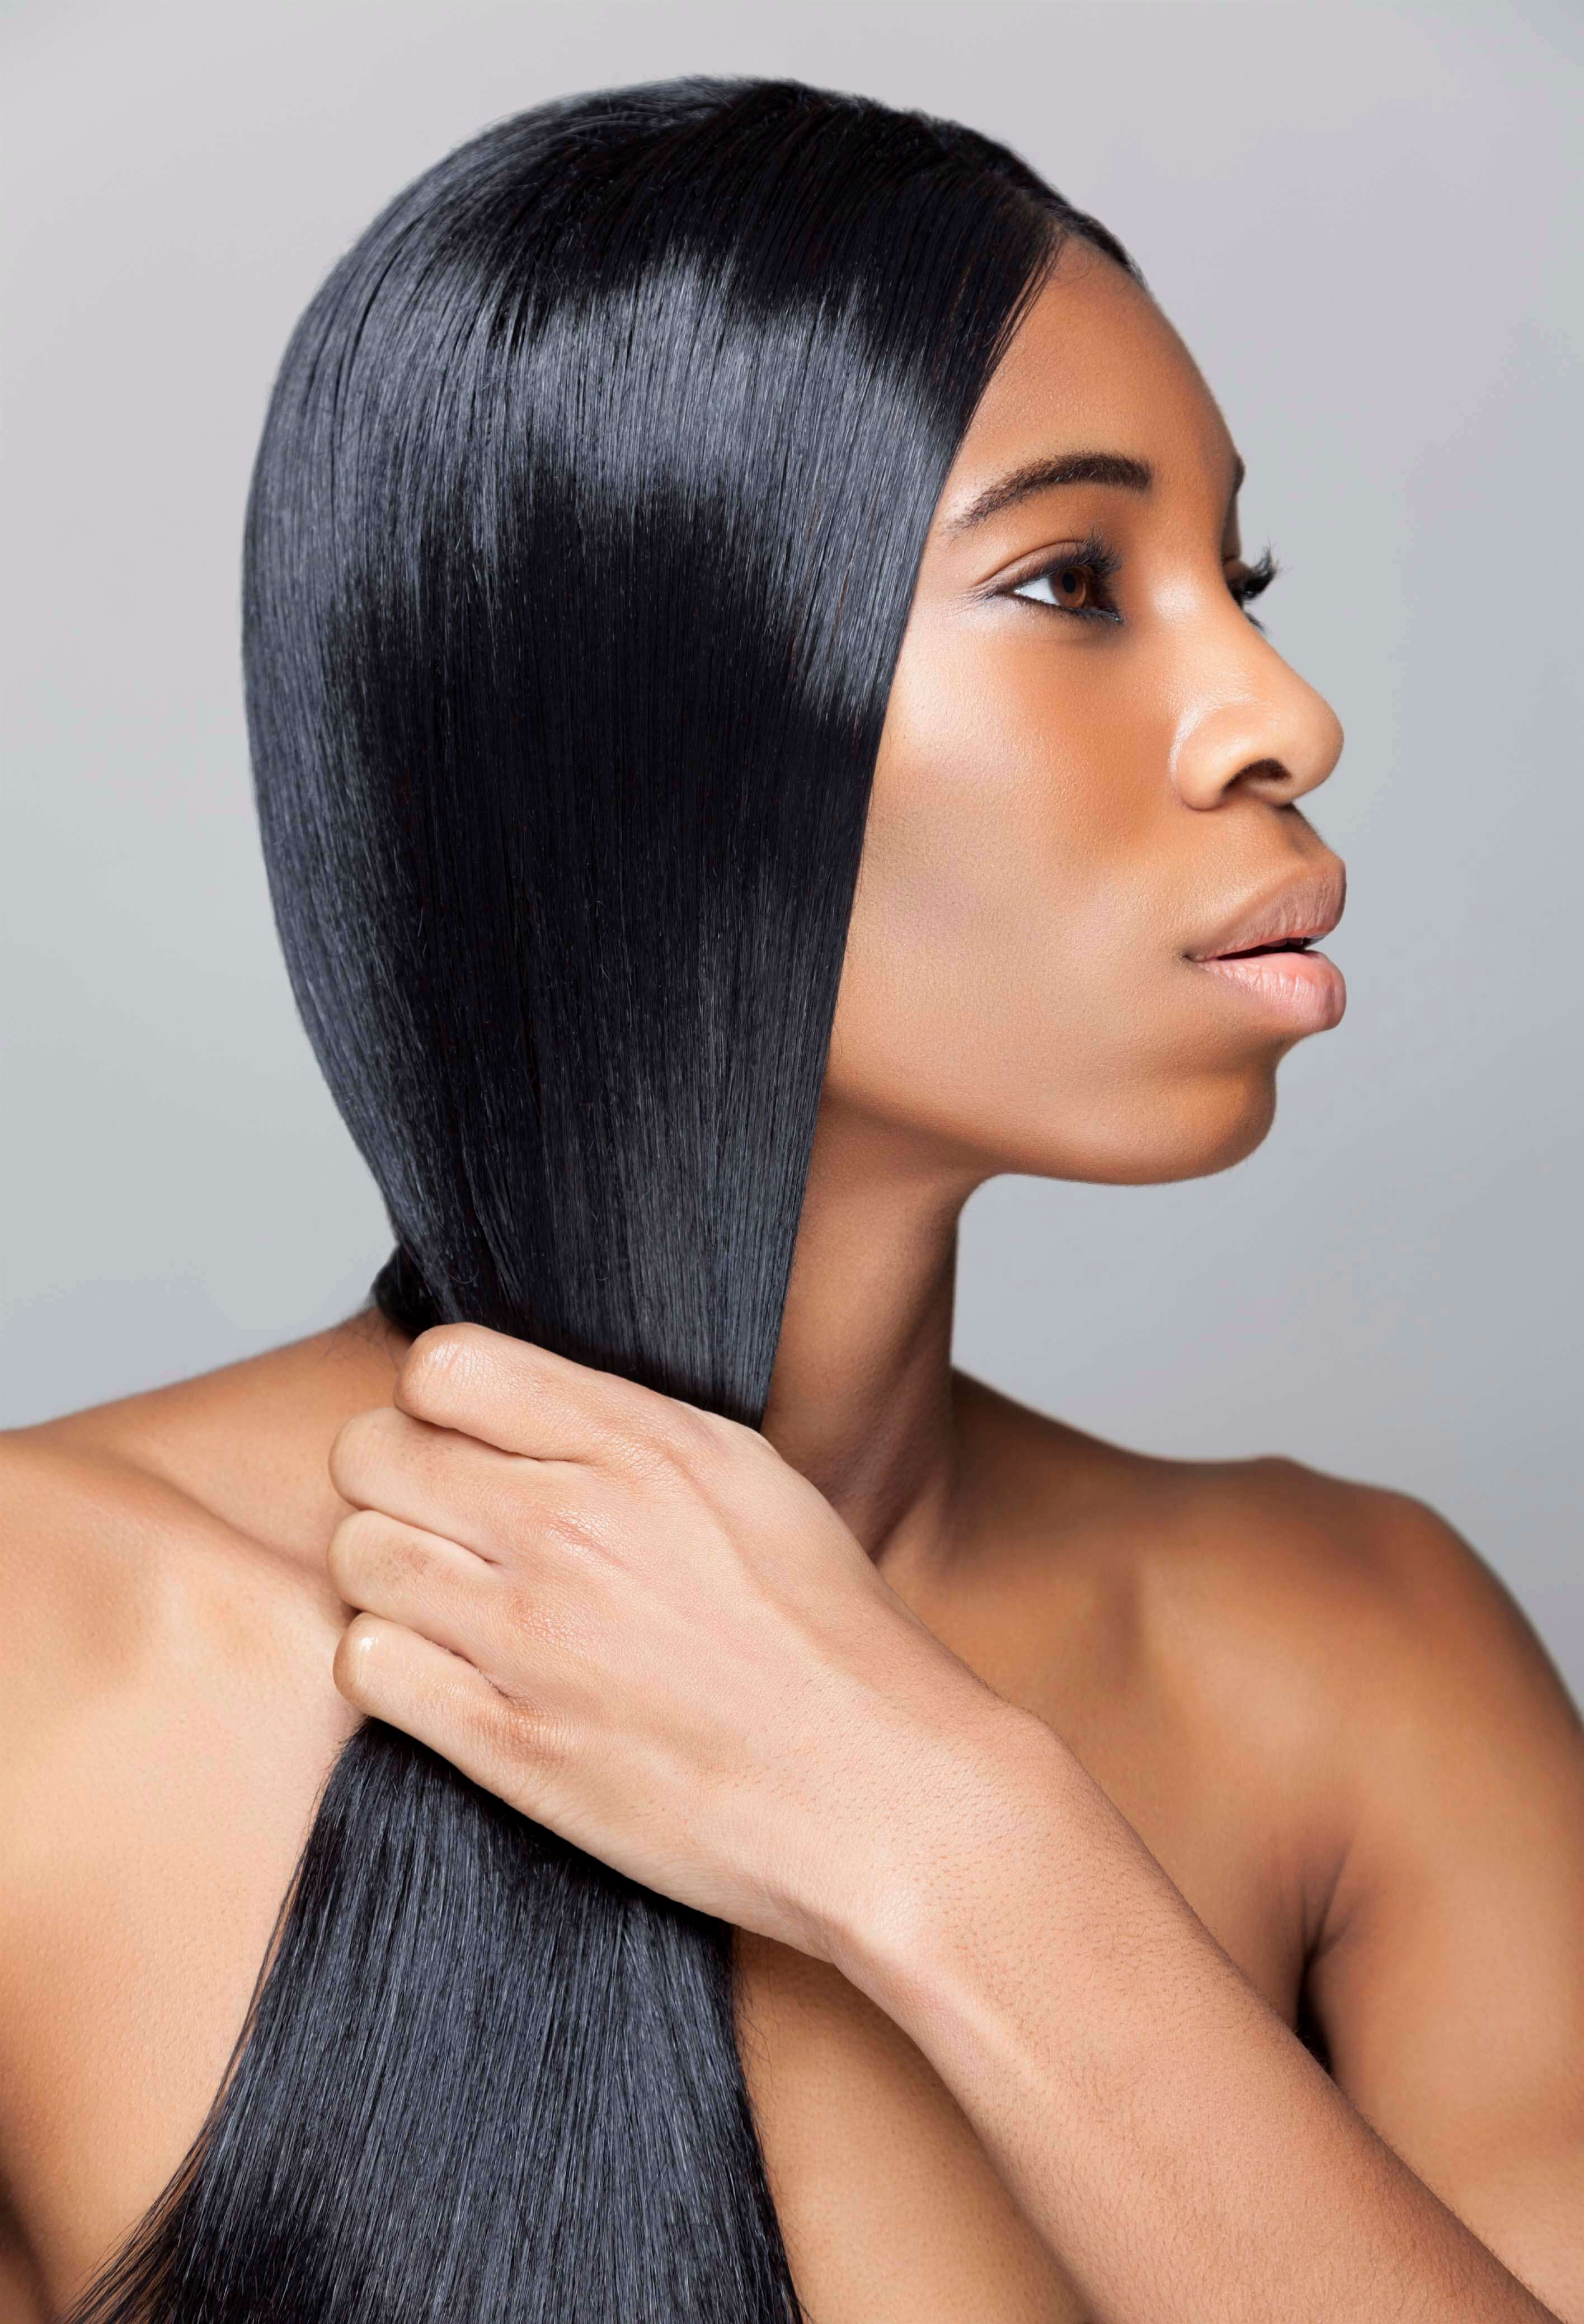 Taking care of relaxed hair our top tips wallpaper how to take black hair iphone hd pics afro wo straight holding